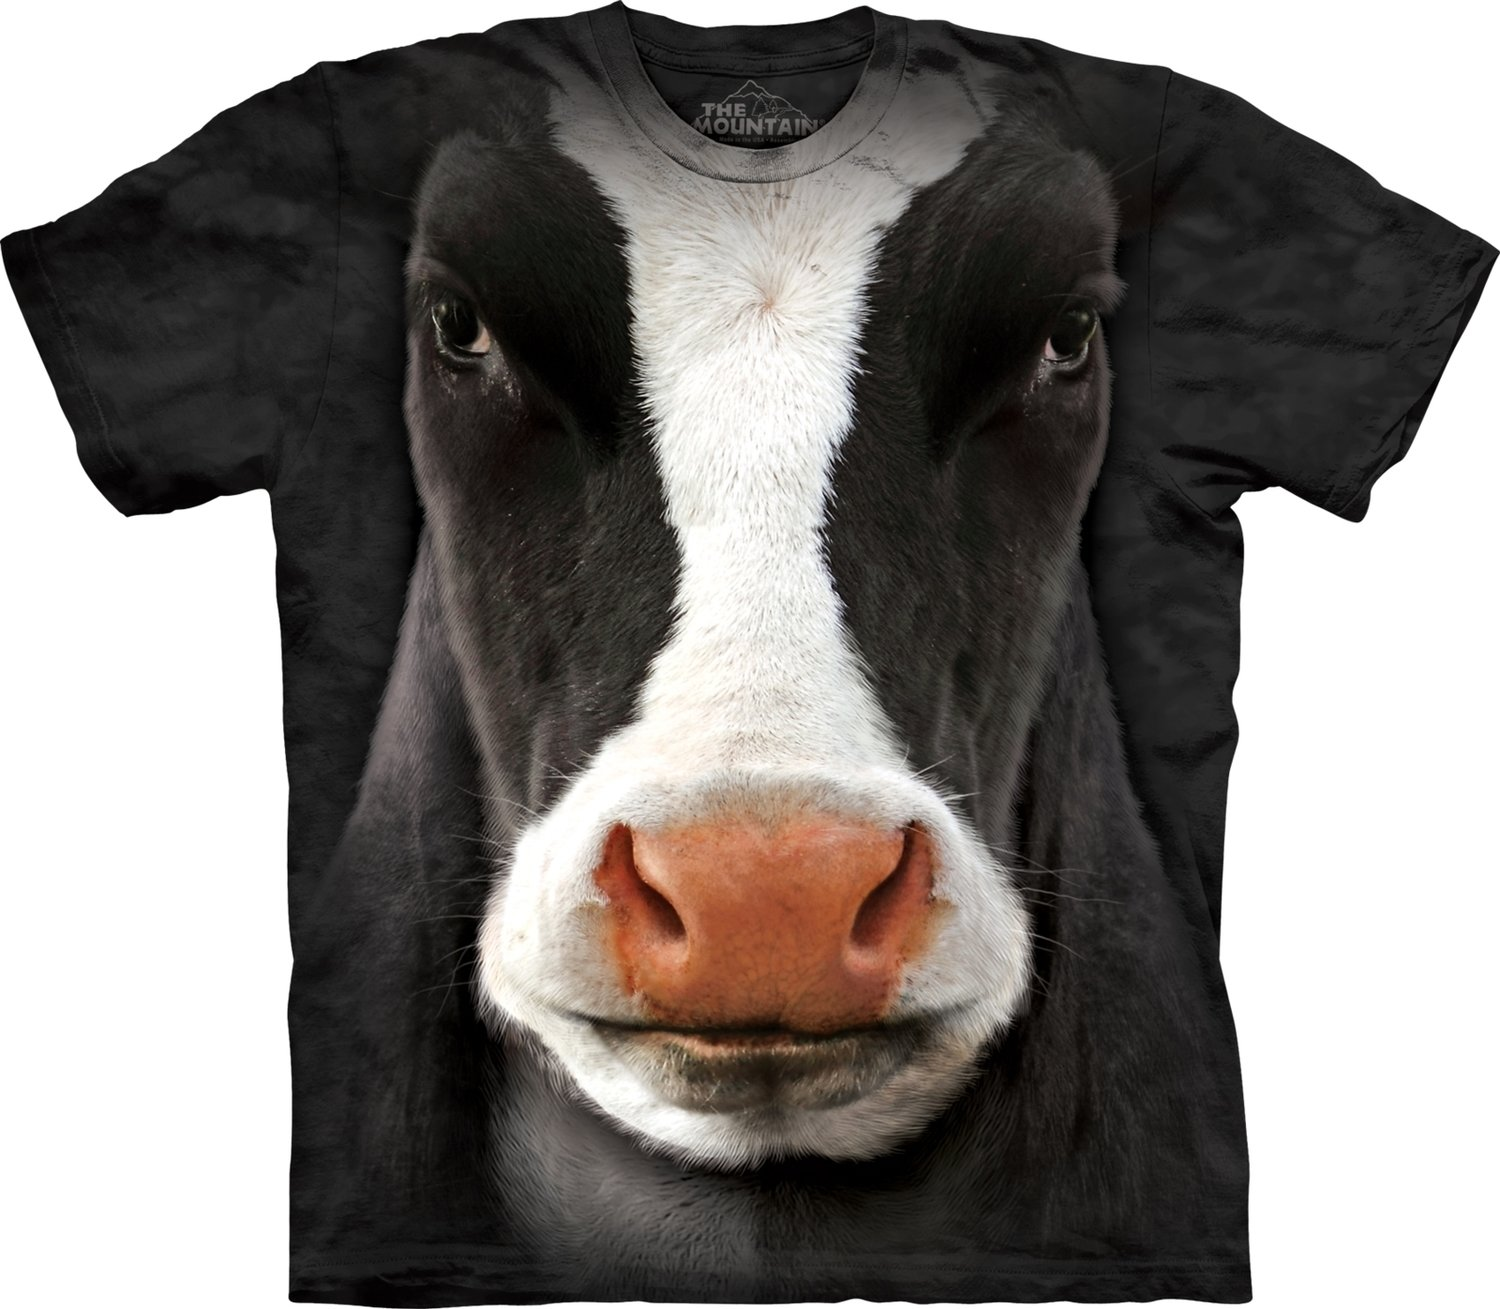 T-Shirt Black Cow